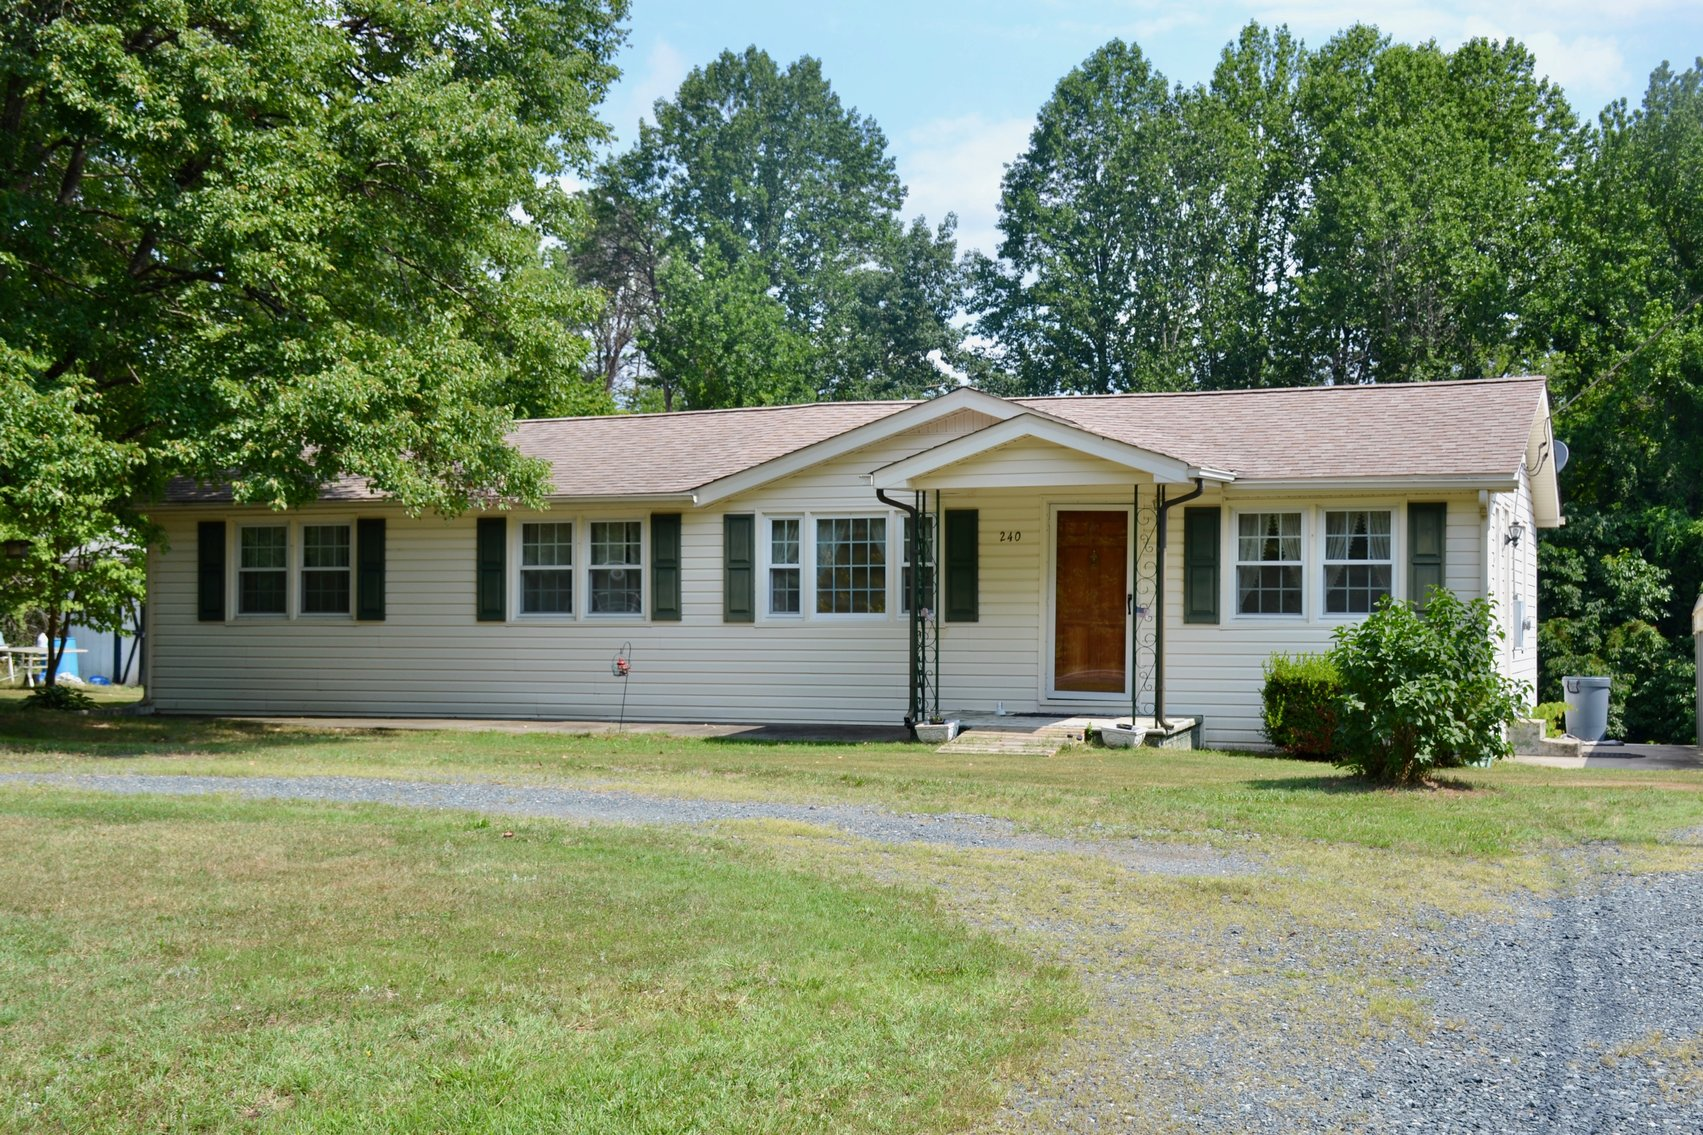 3 BR/1.5 BA Home on .8 +/- Acres Located Just off Rt. 1 in Stafford County, VA